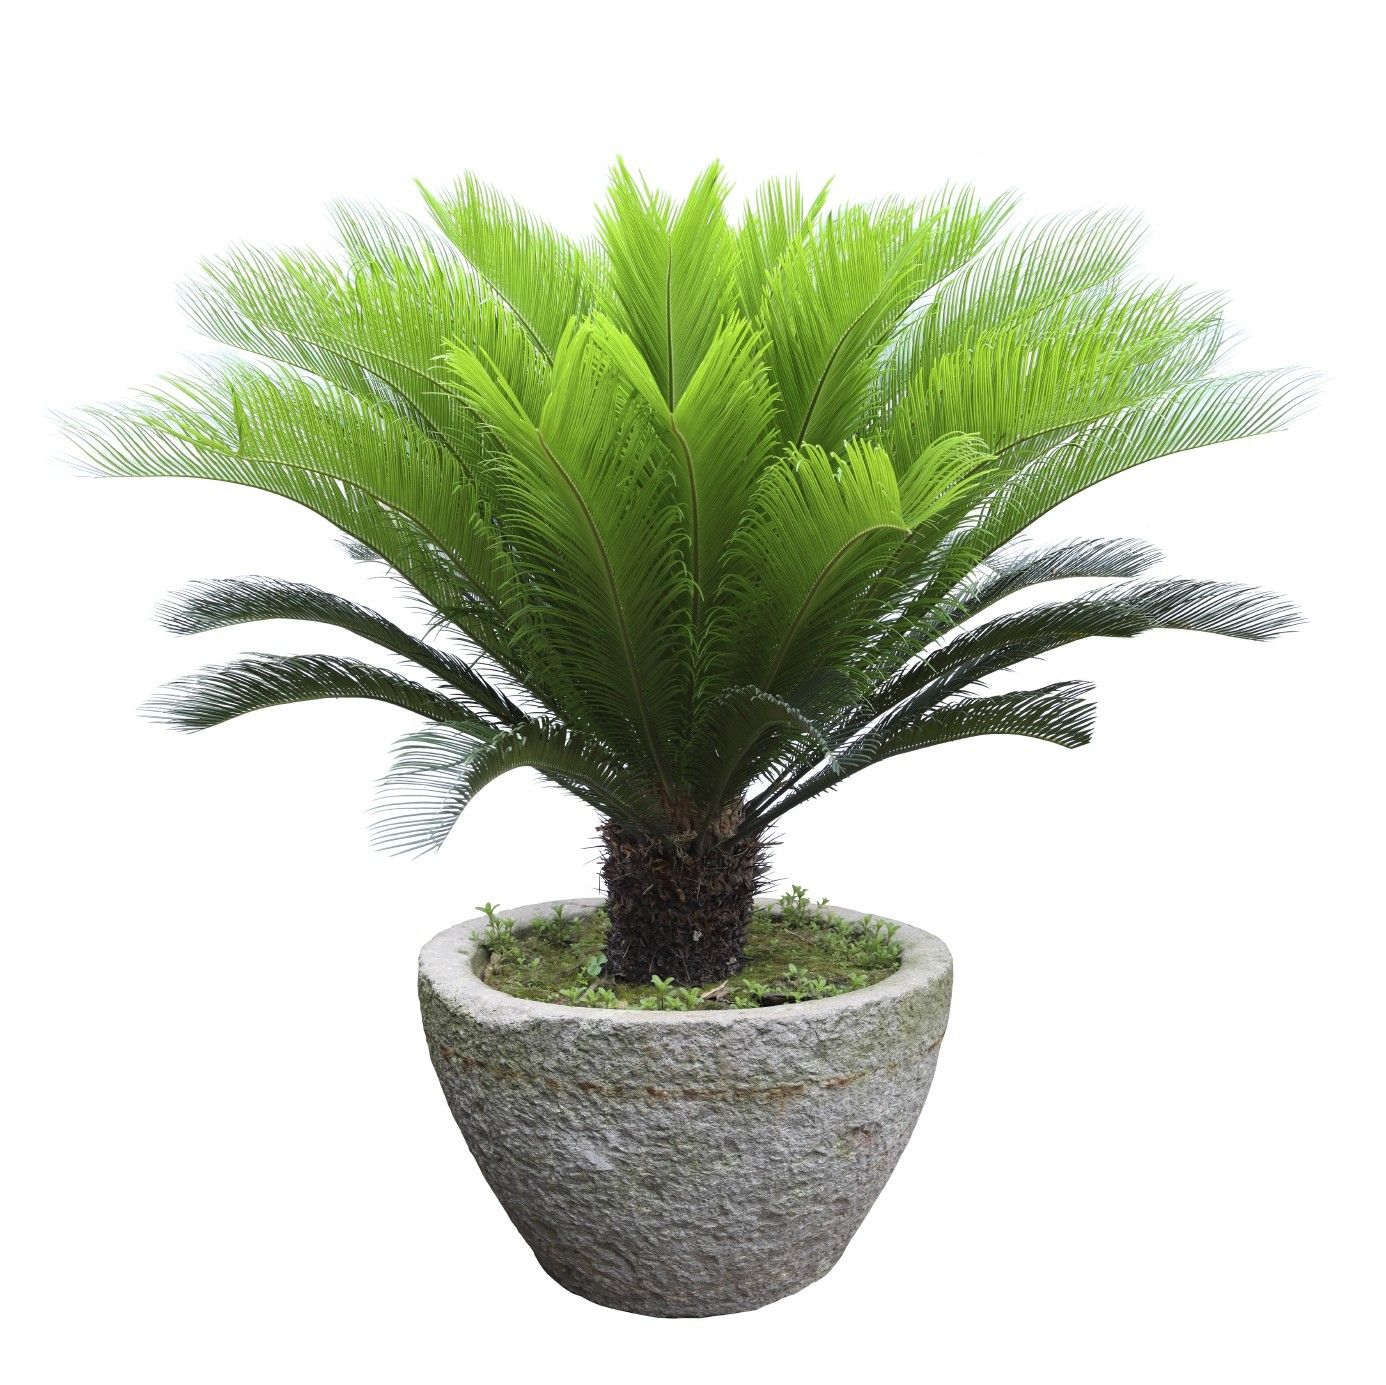 Sago Palm Fertilizer  When And How To Fertilize Sago Palm Plants